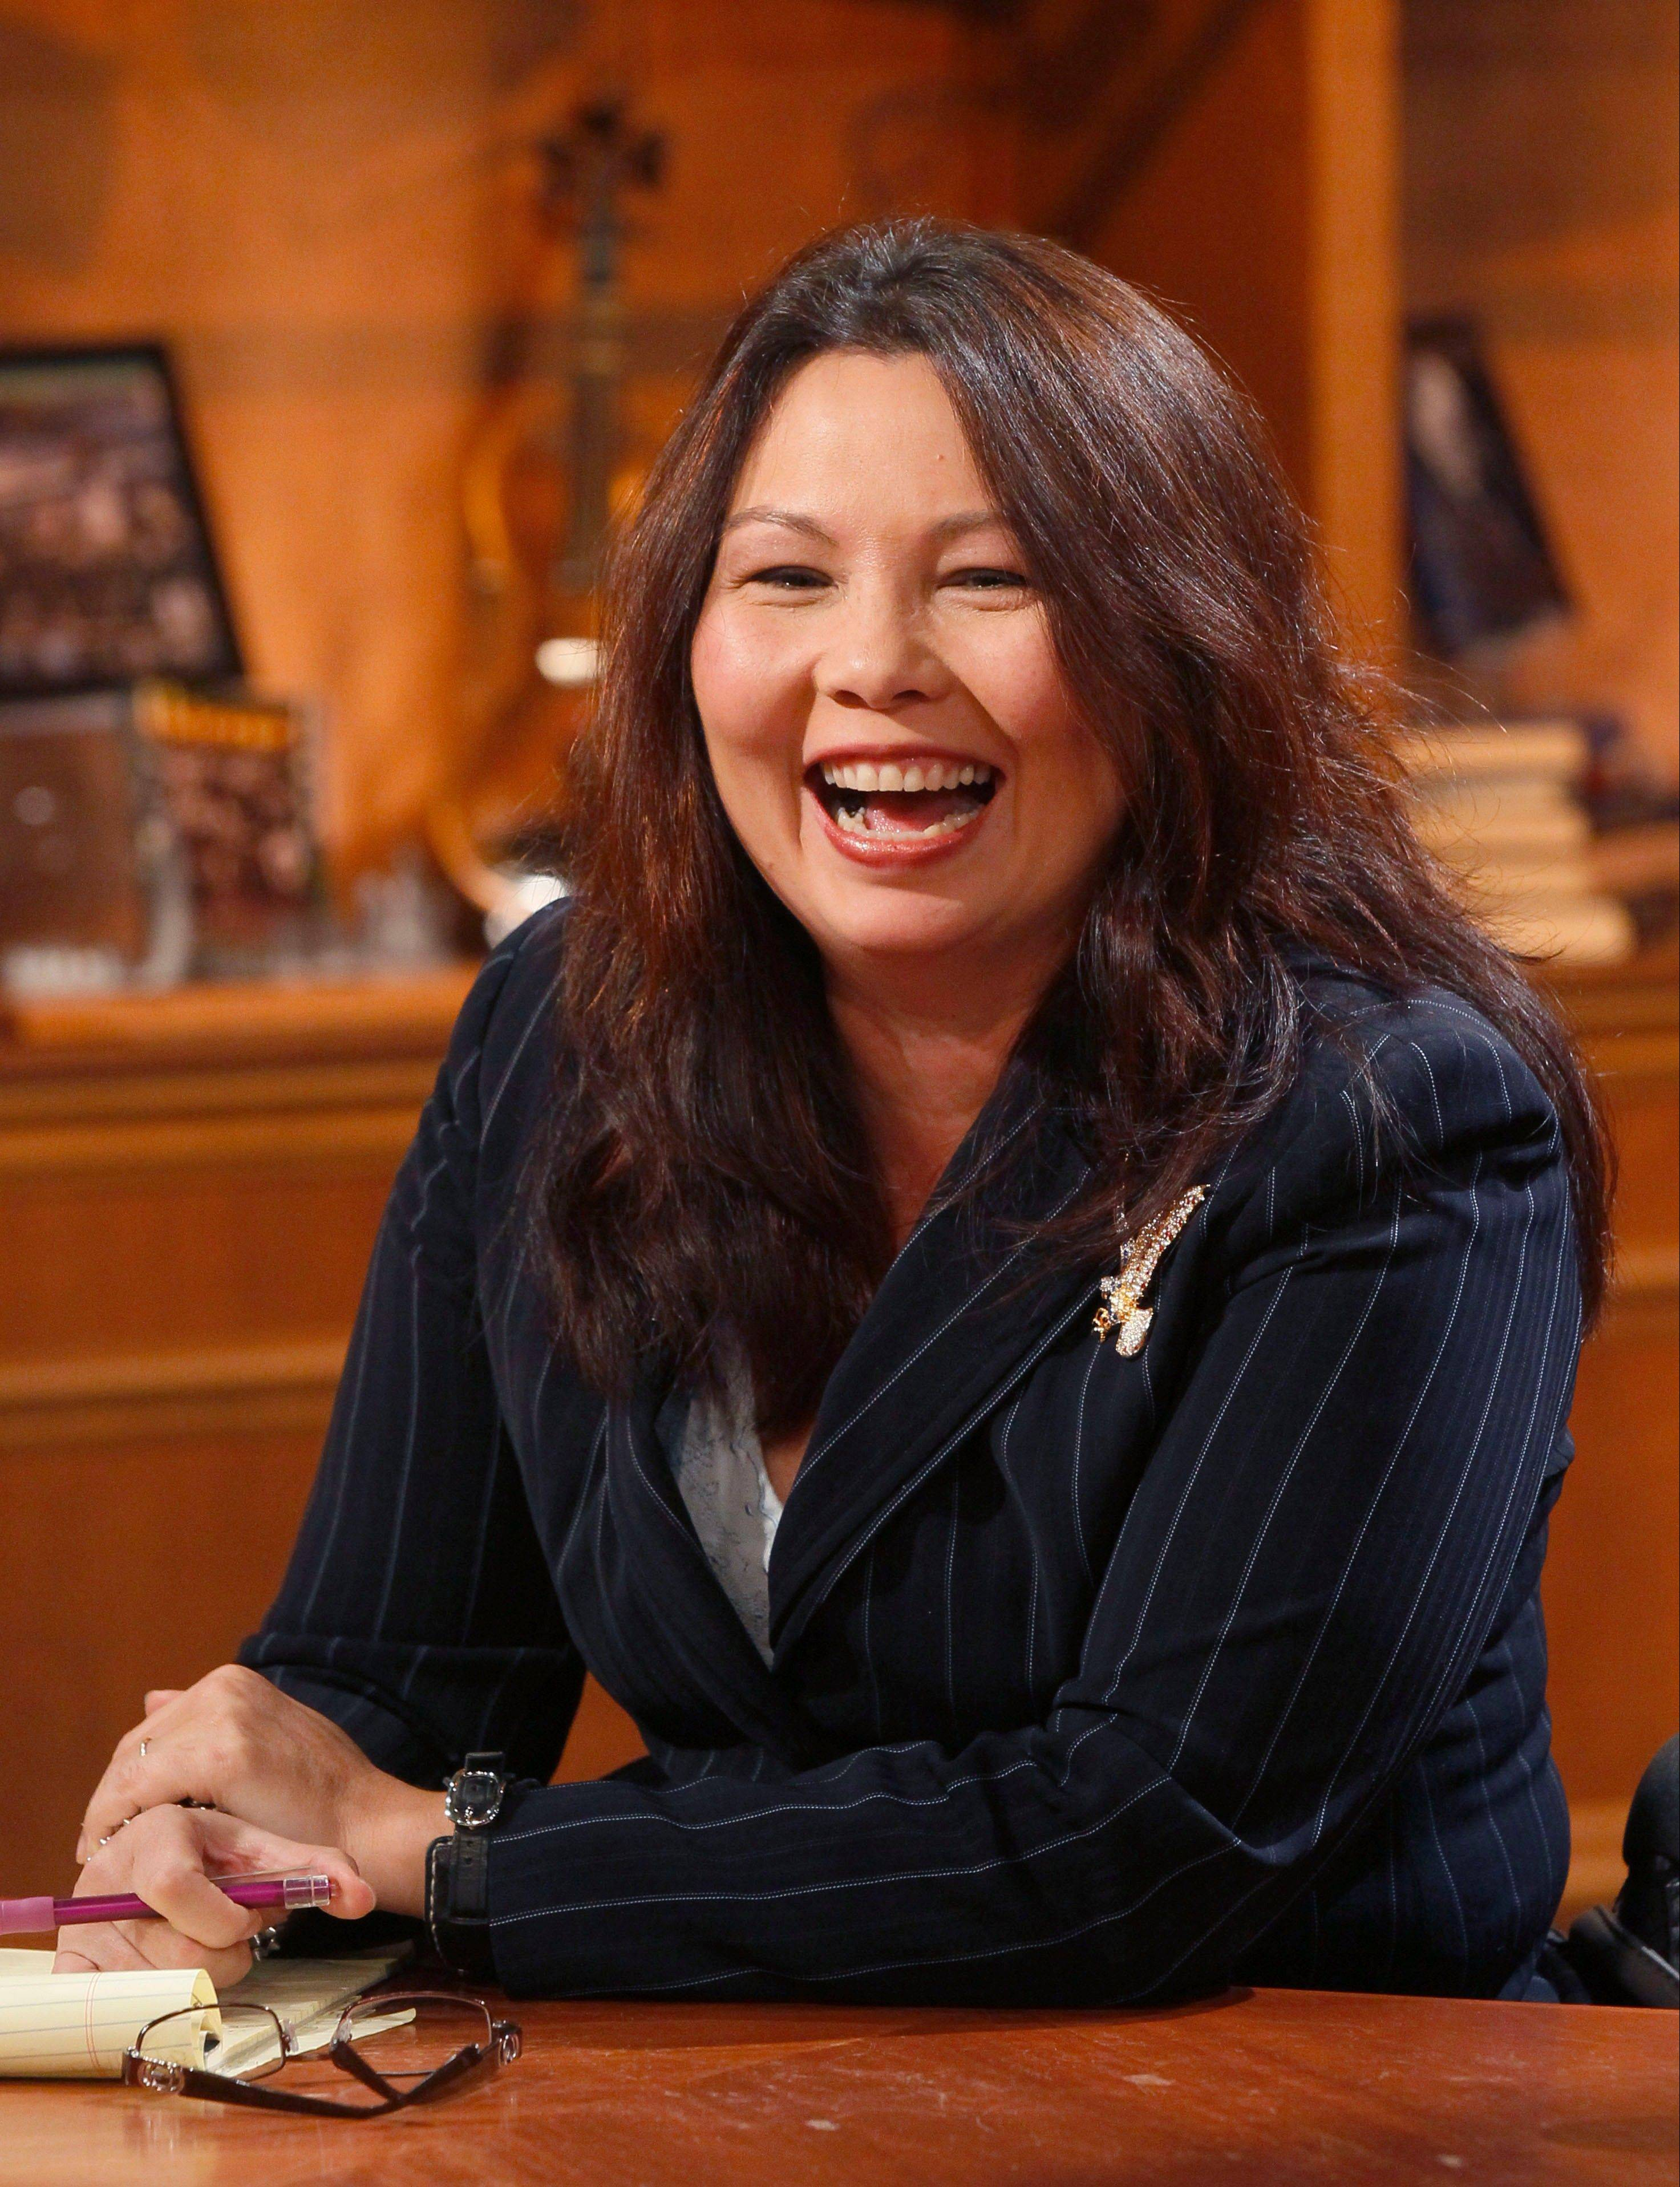 Democratic challenger Tammy Duckworth waits for the start of a televised debate against U.S. Rep. Joe Walsh at the WTTW studios Thursday in Chicago.